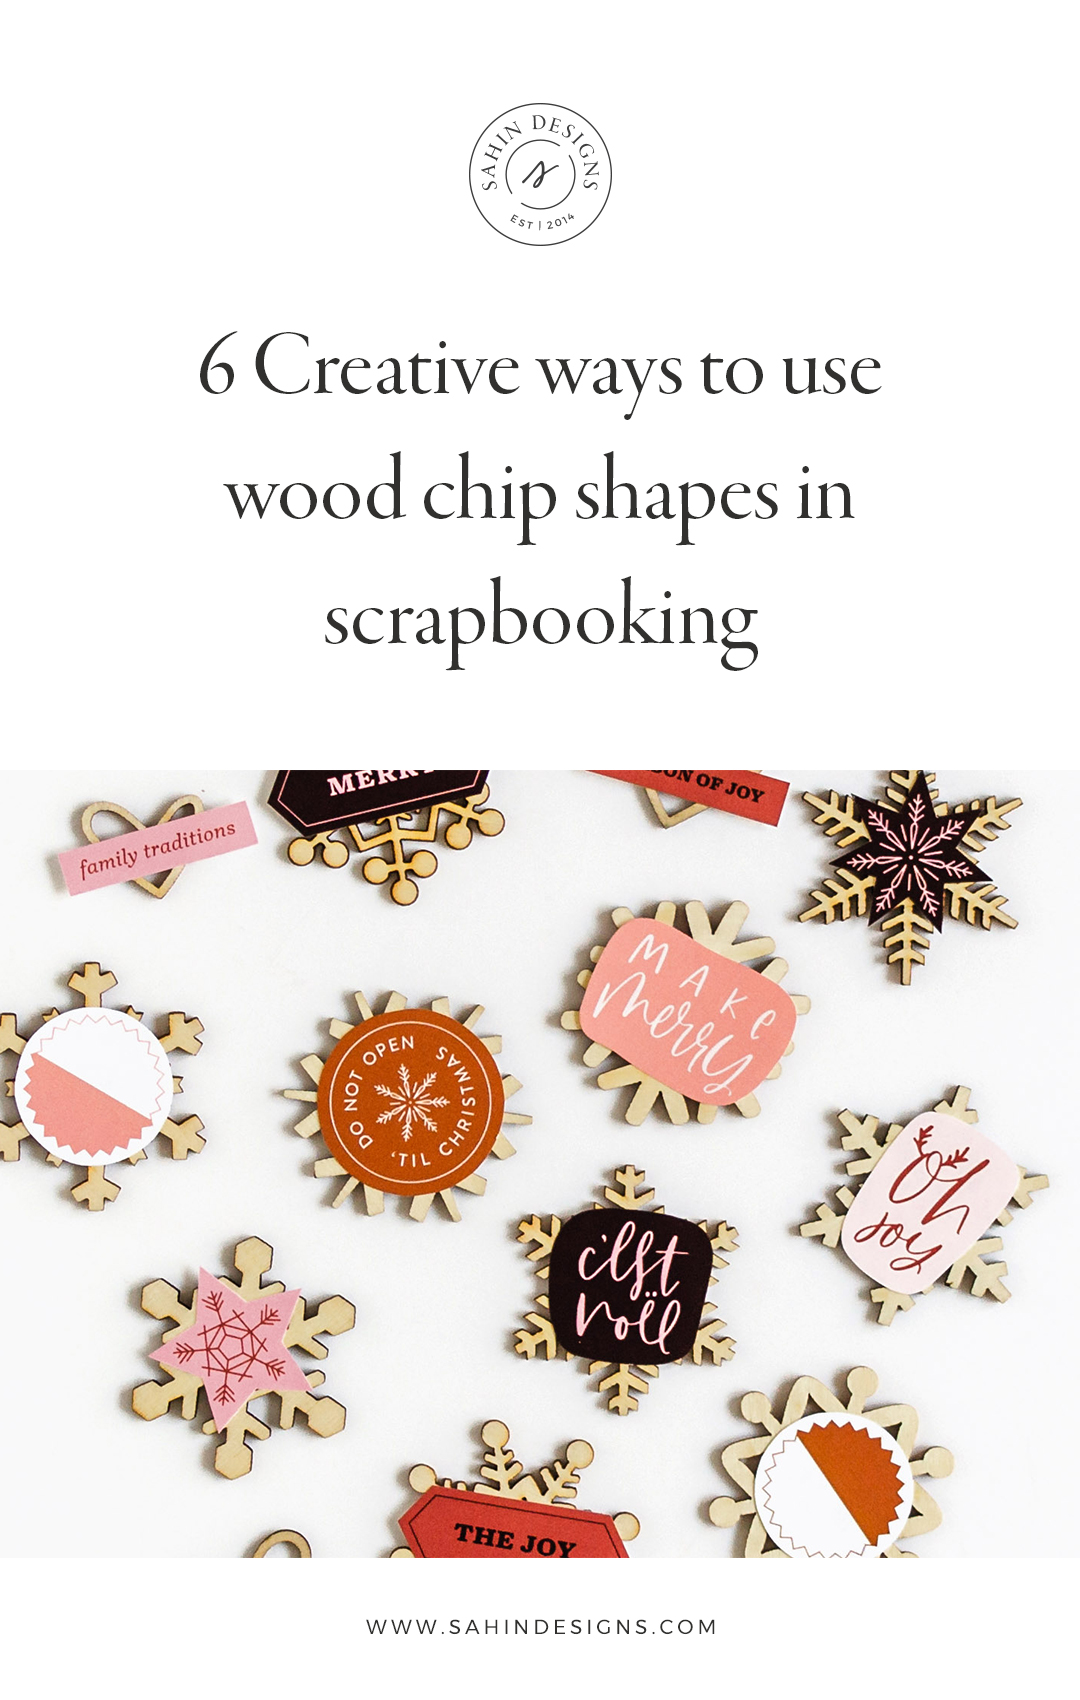 6 Creative ways to use wood chip shapes in scrapbooking - Sahin Designs